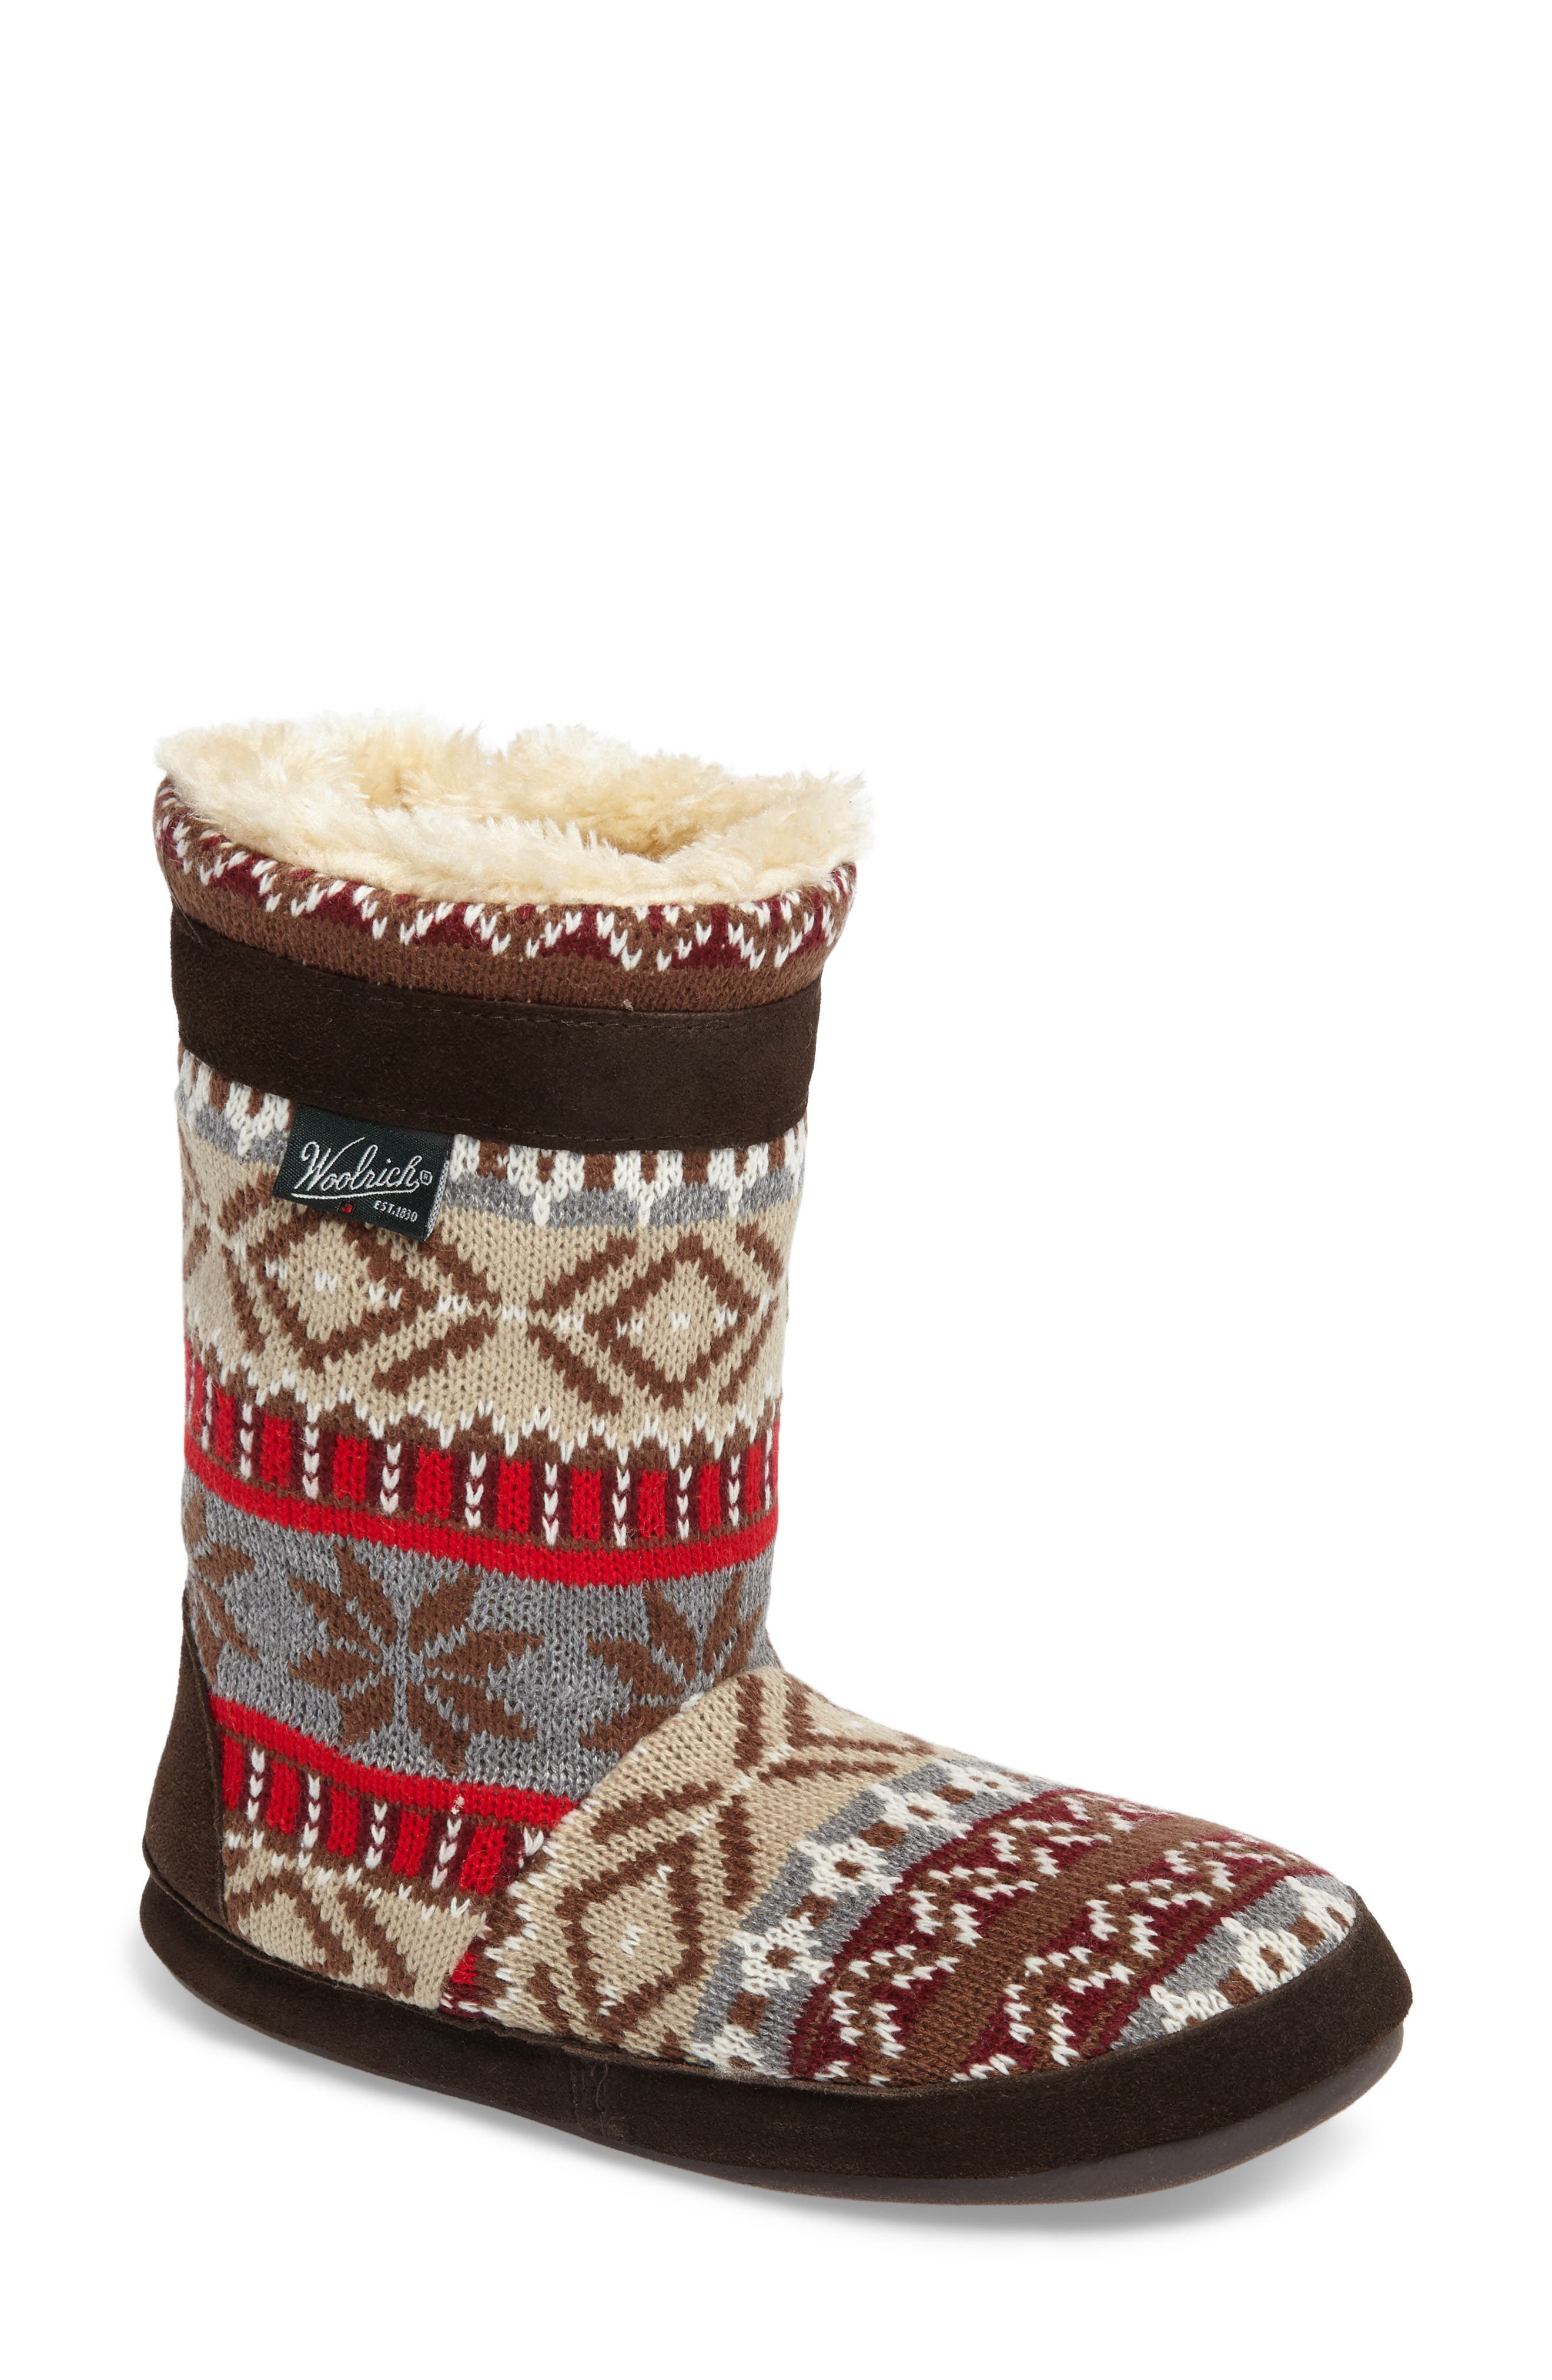 Alternate Image 1 Selected - Woolrich Whitecap Knit Slipper Bootie (Women)